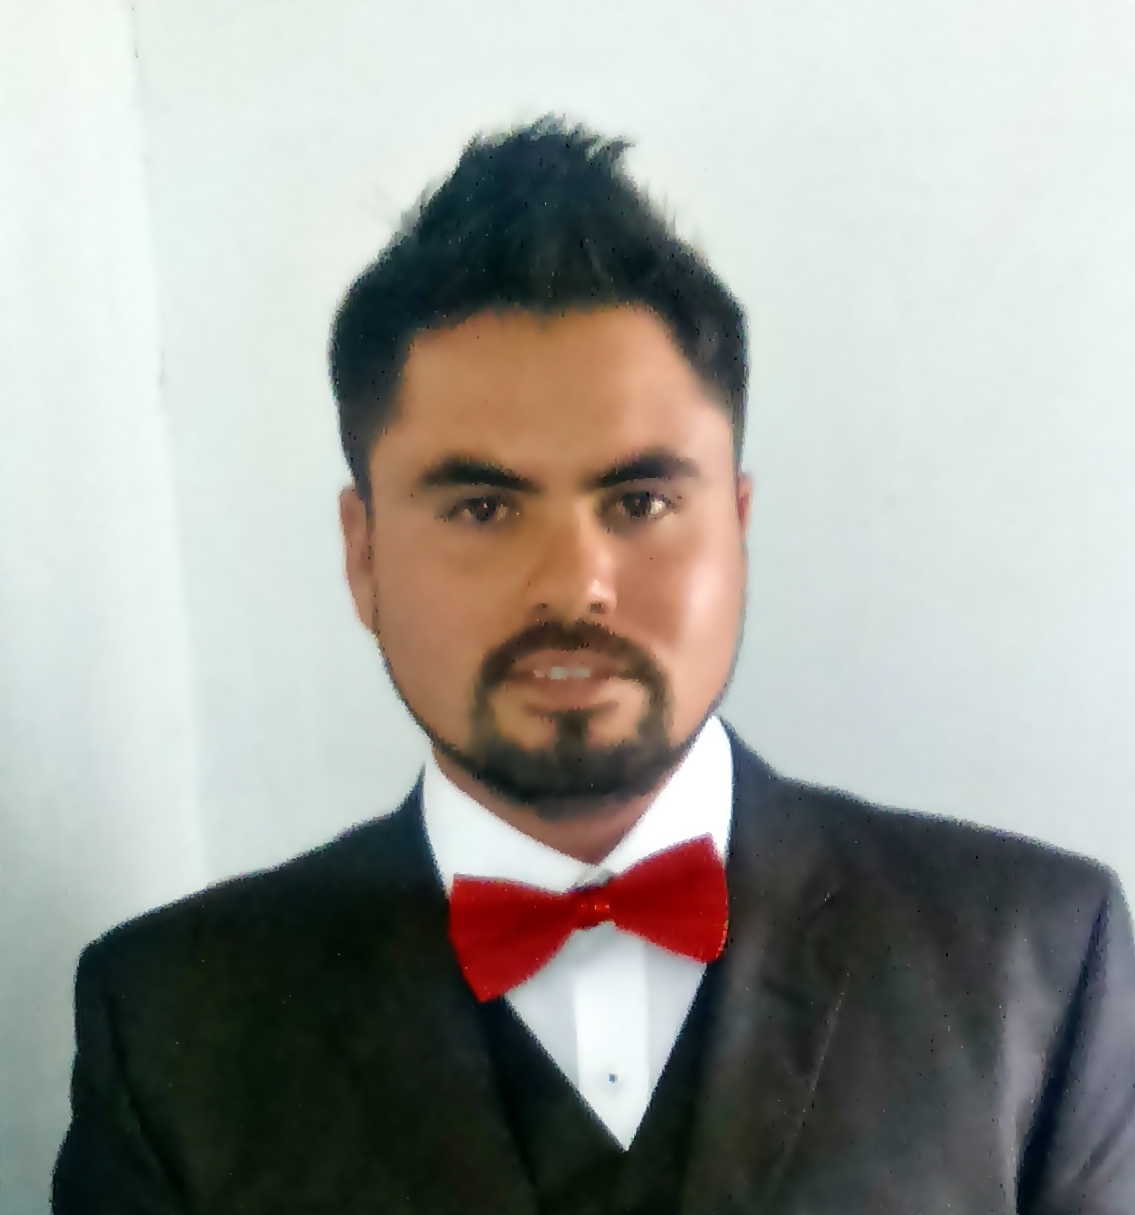 Image of Josue Salgado